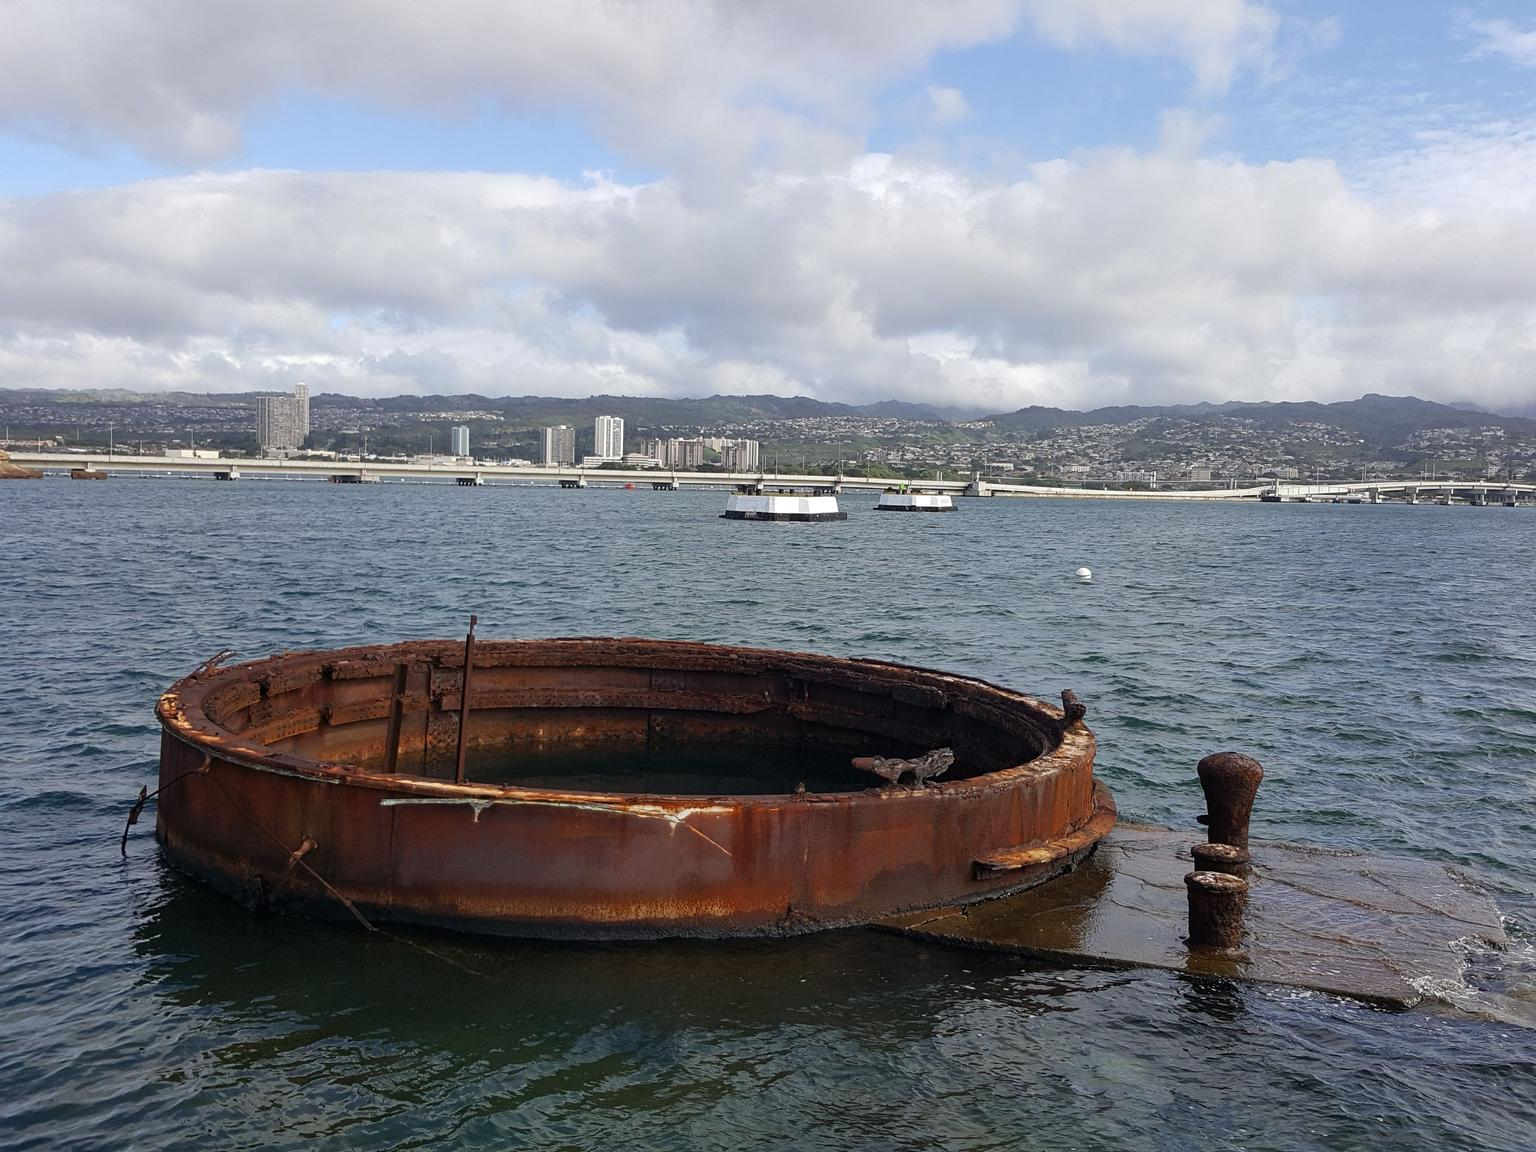 Skip the Line: Pearl Harbor Memorial Small Group Tour From Waikiki